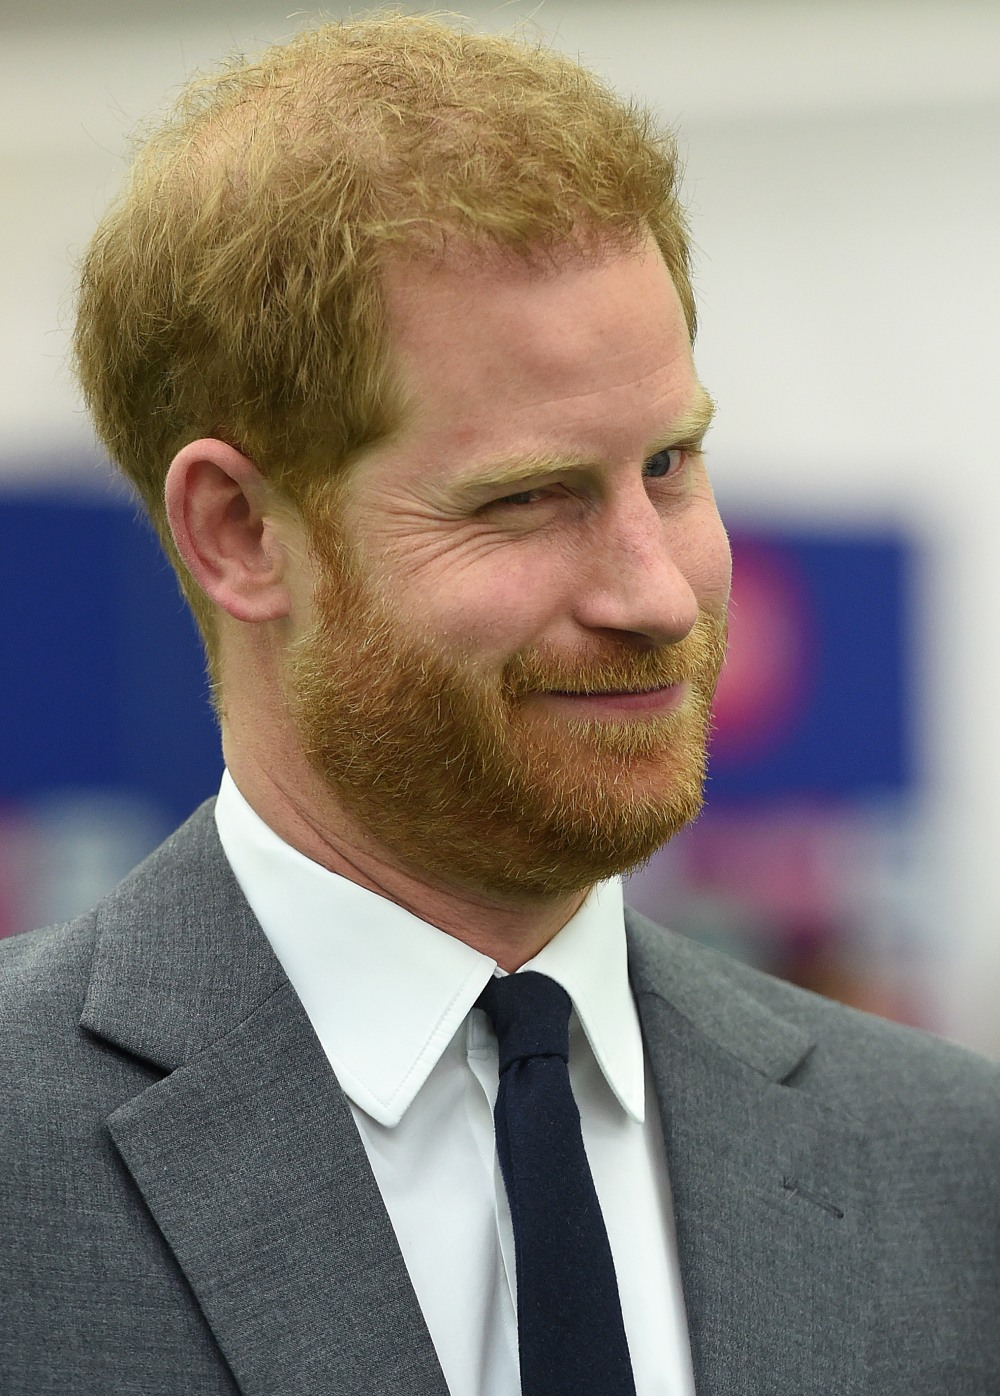 The Duke Of Sussex Attends The Opening Match Of The ICC Cricket World Cup